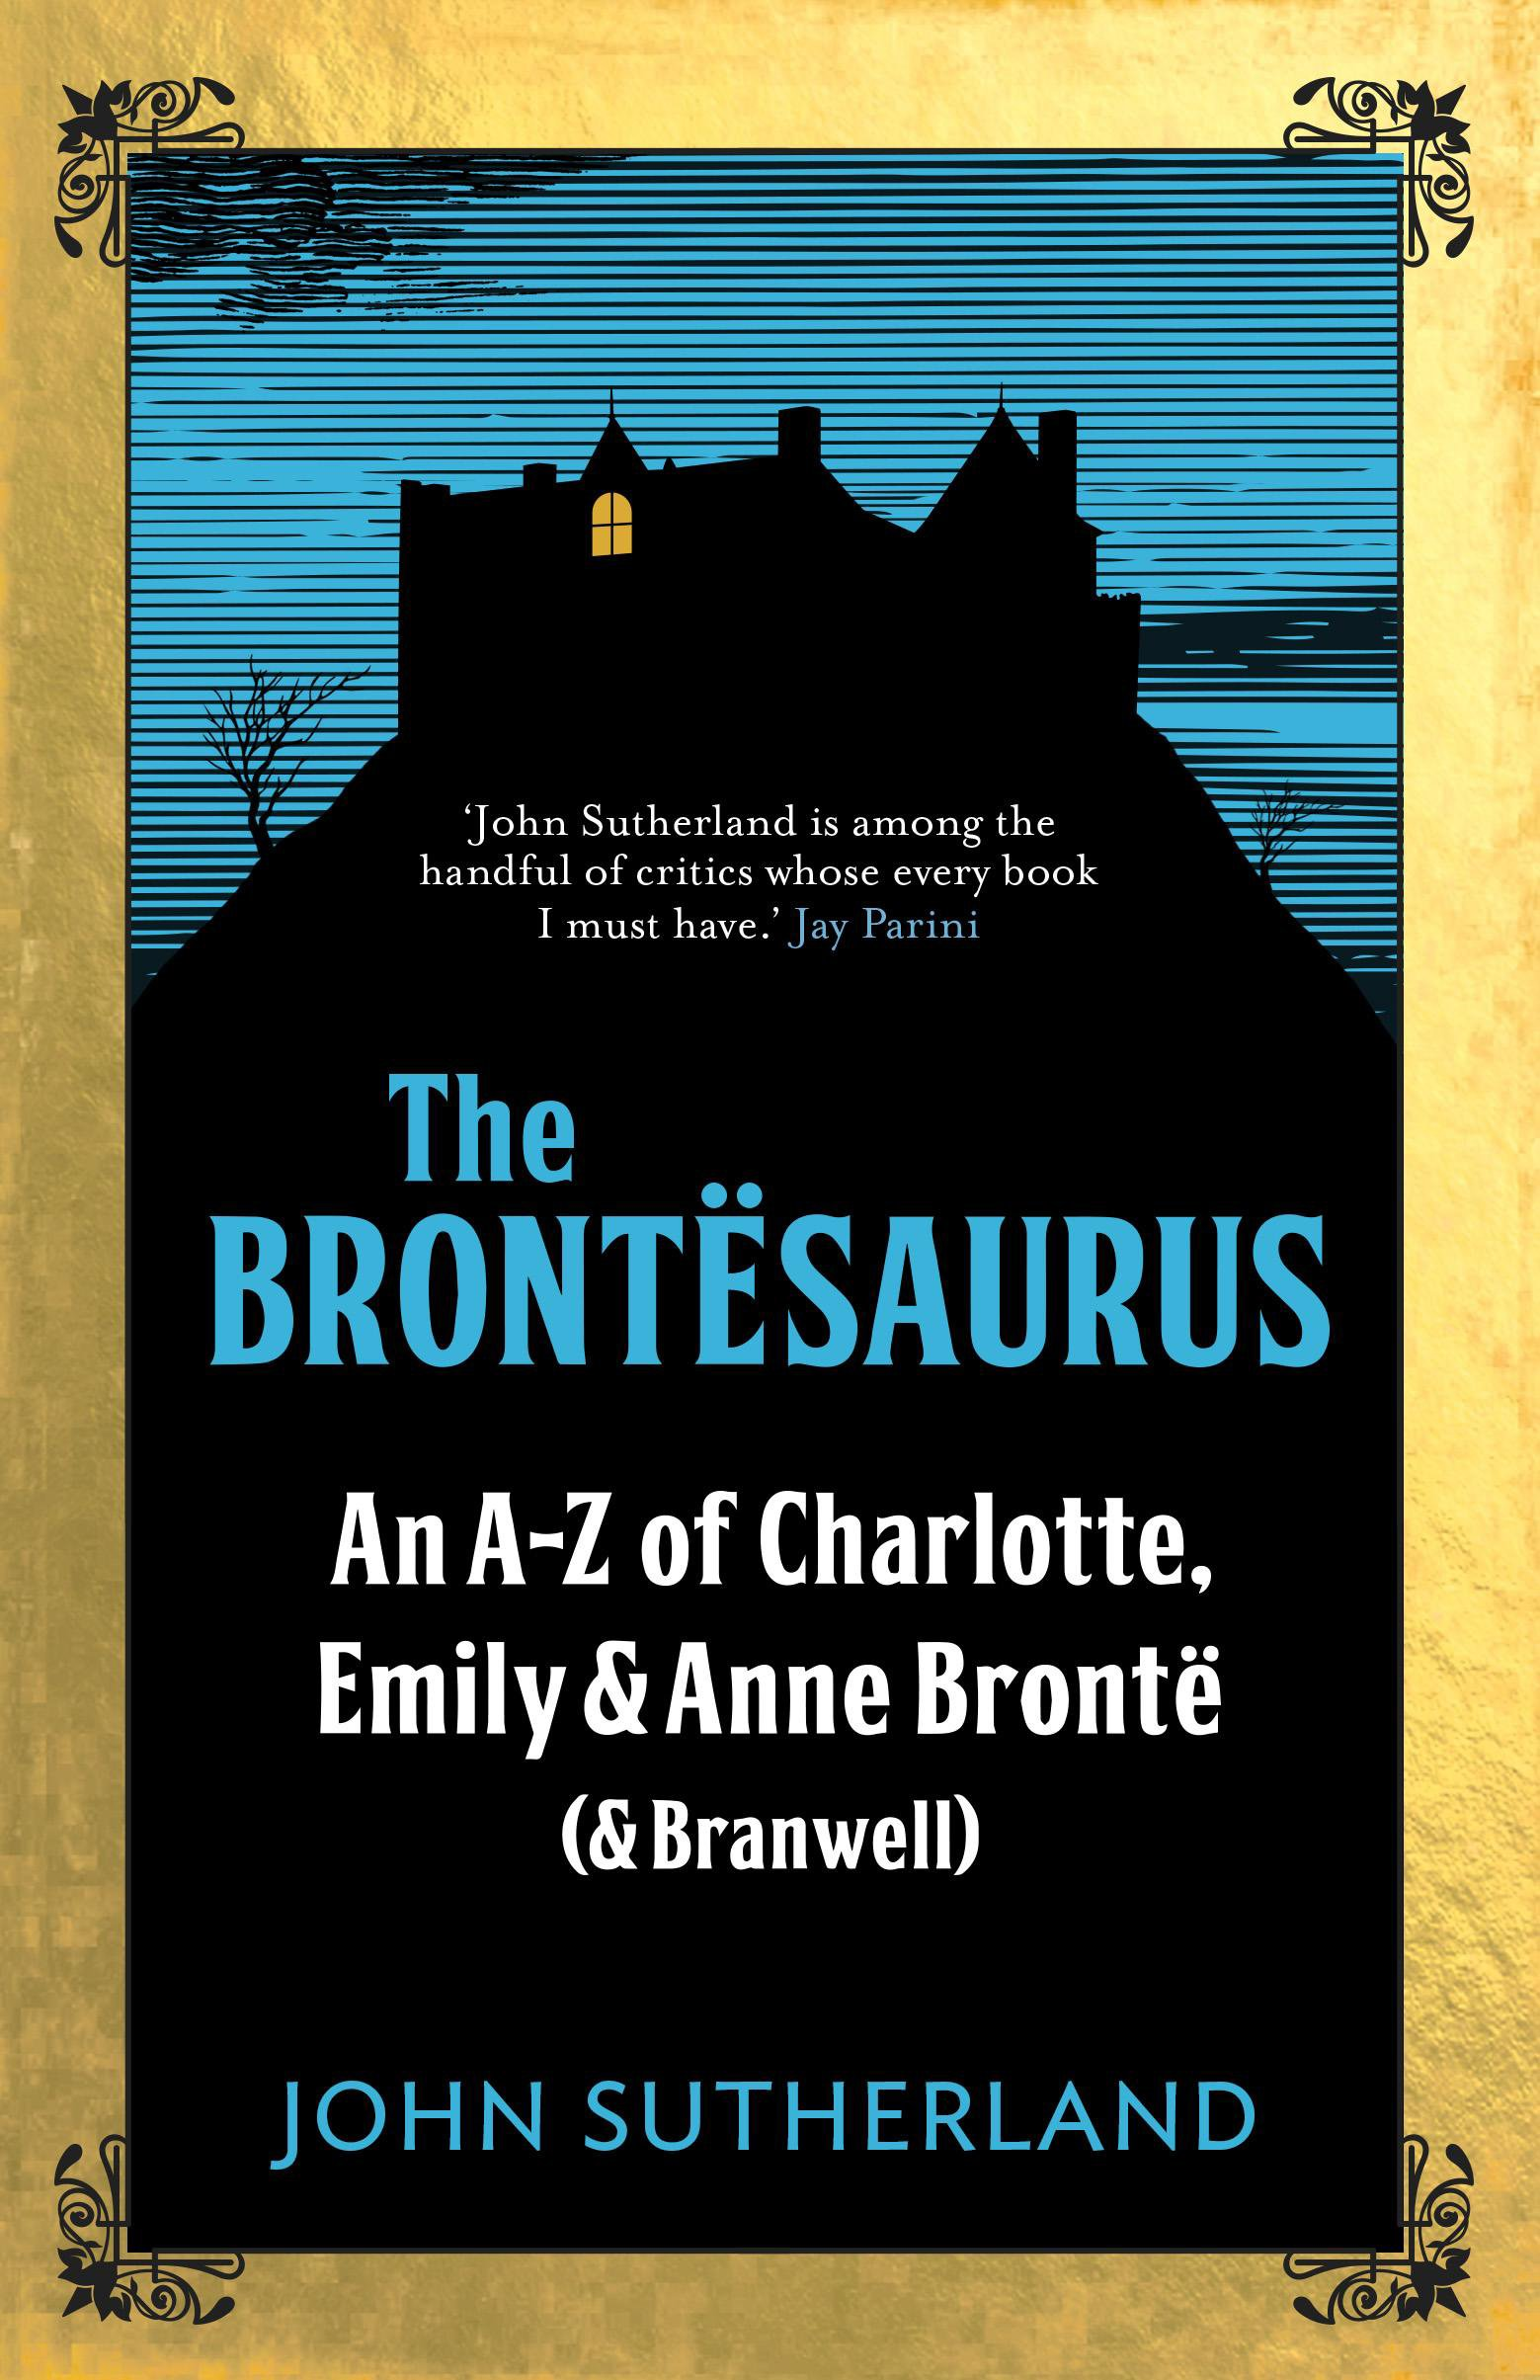 The Brontësaurus: An A-Z of Charlotte, Emily and Anne Brontë (and Branwell)